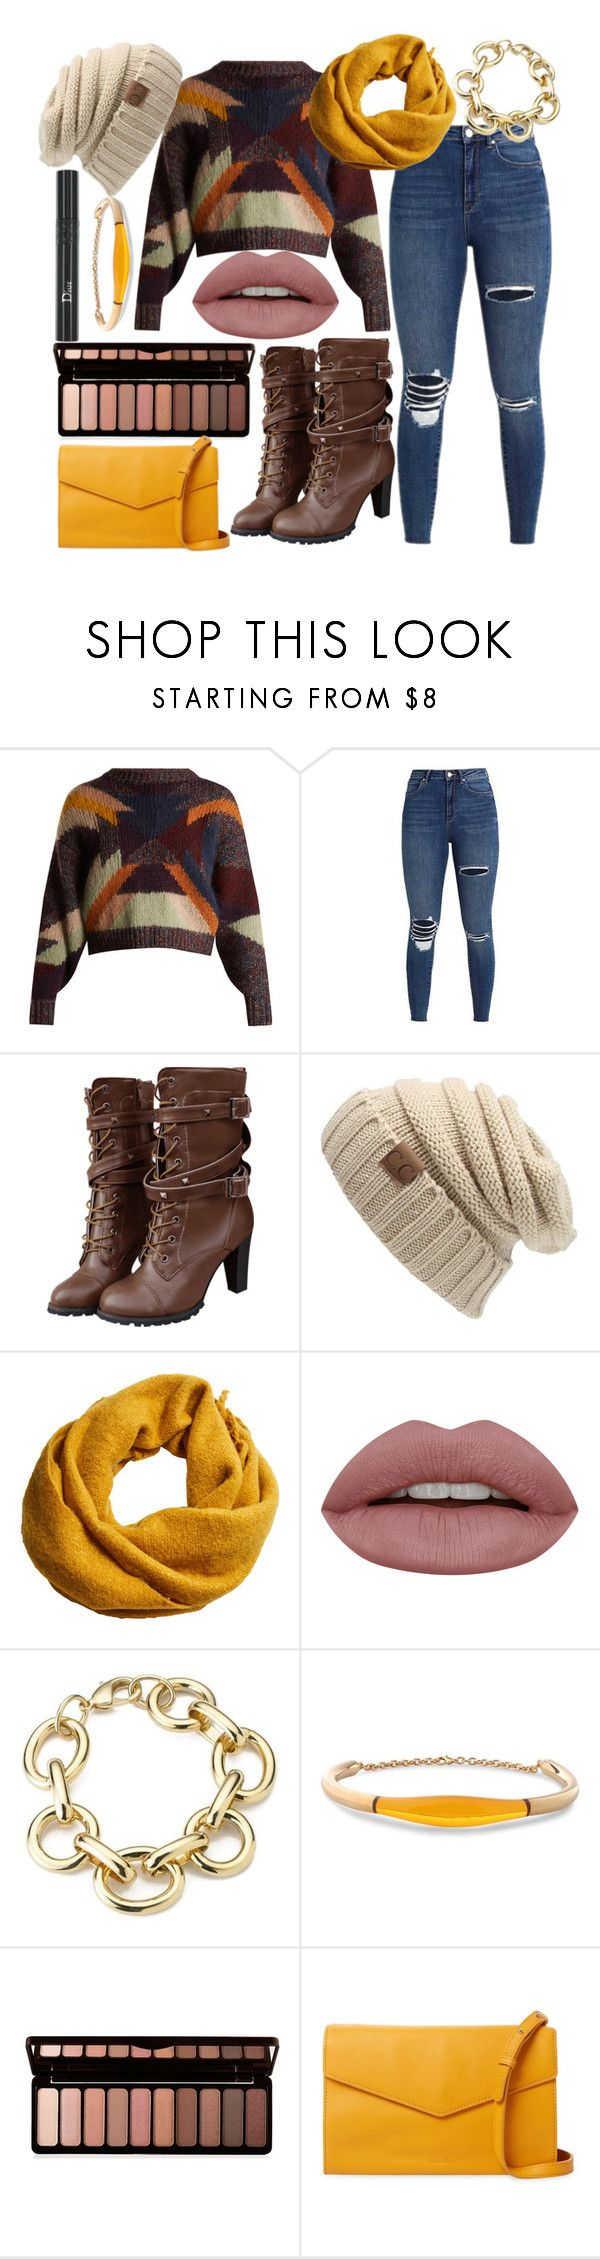 """Sweater Weather"" by bellarina340 ❤ liked on Polyvore featuring Isabel Marant, MANGO, Balmain, Christian Dior, Forever 21 and Steven Alan"